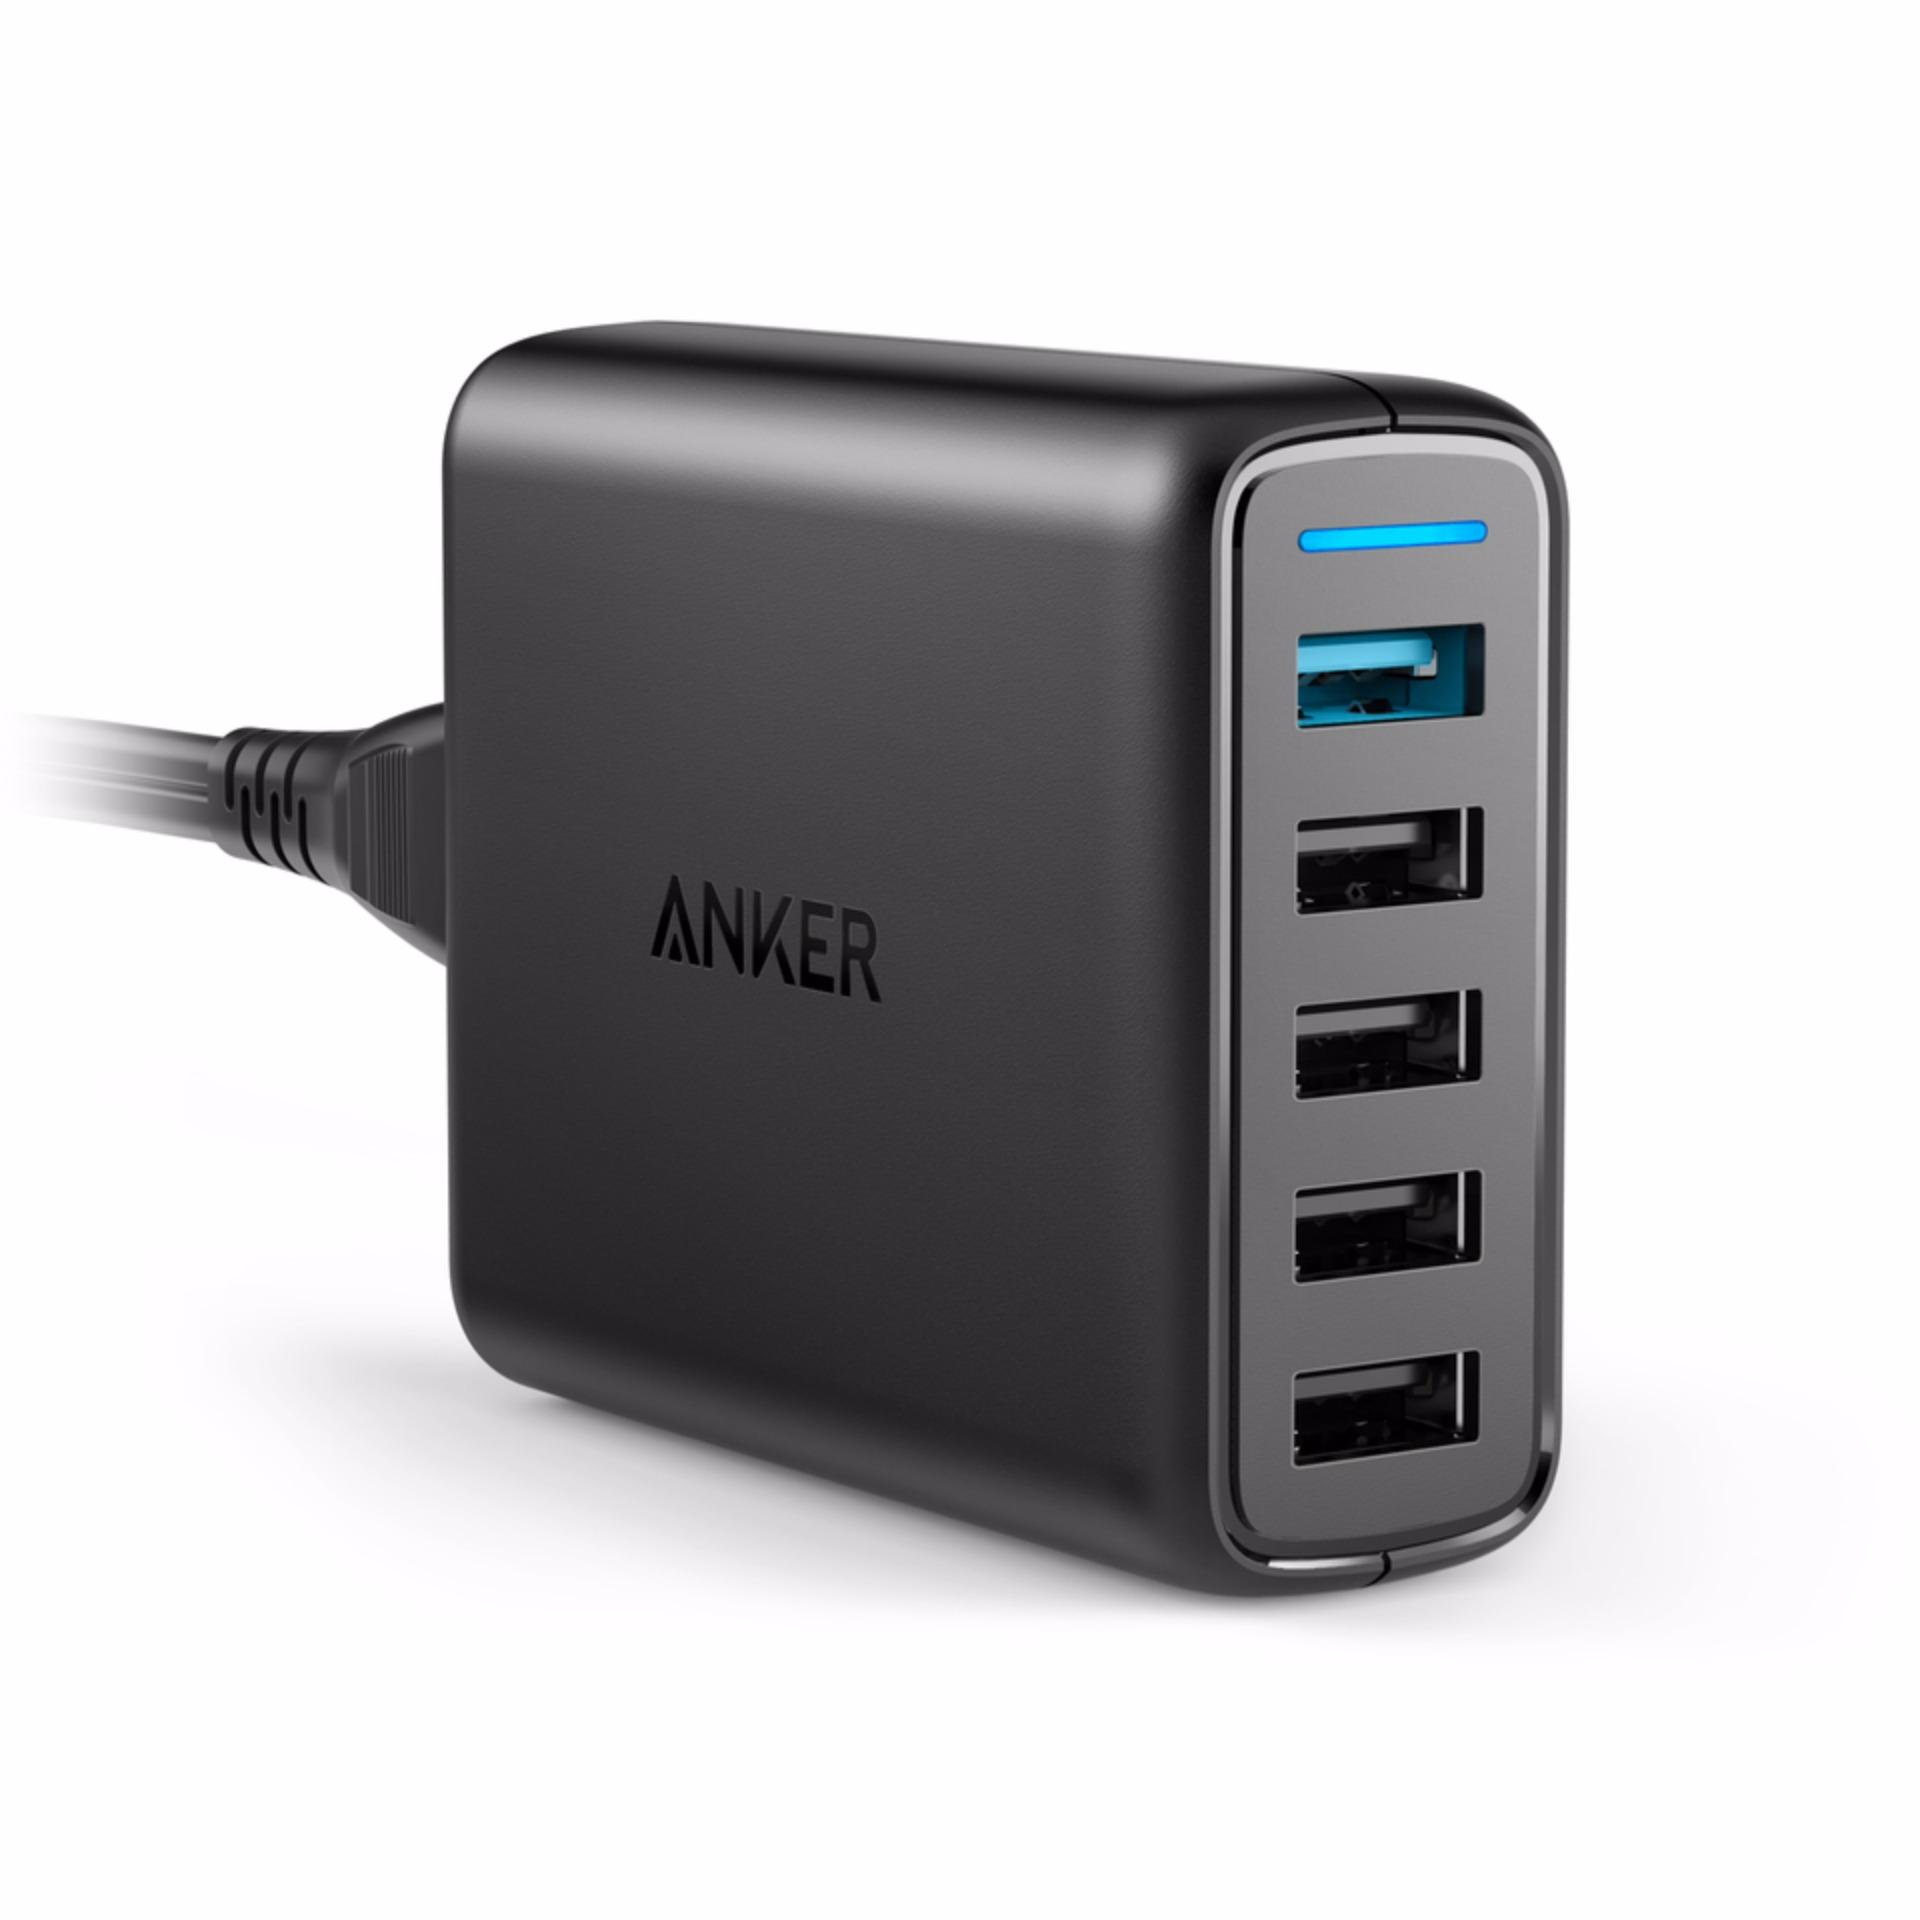 Cek Harga Baru Anker Desktop Charger Powerport 5 Usb C Hitam A2053 Powerline To Micro Female Adapter Black B8174011 Tokuniku A2054611 Speed Port 63w With Quick Charge 30